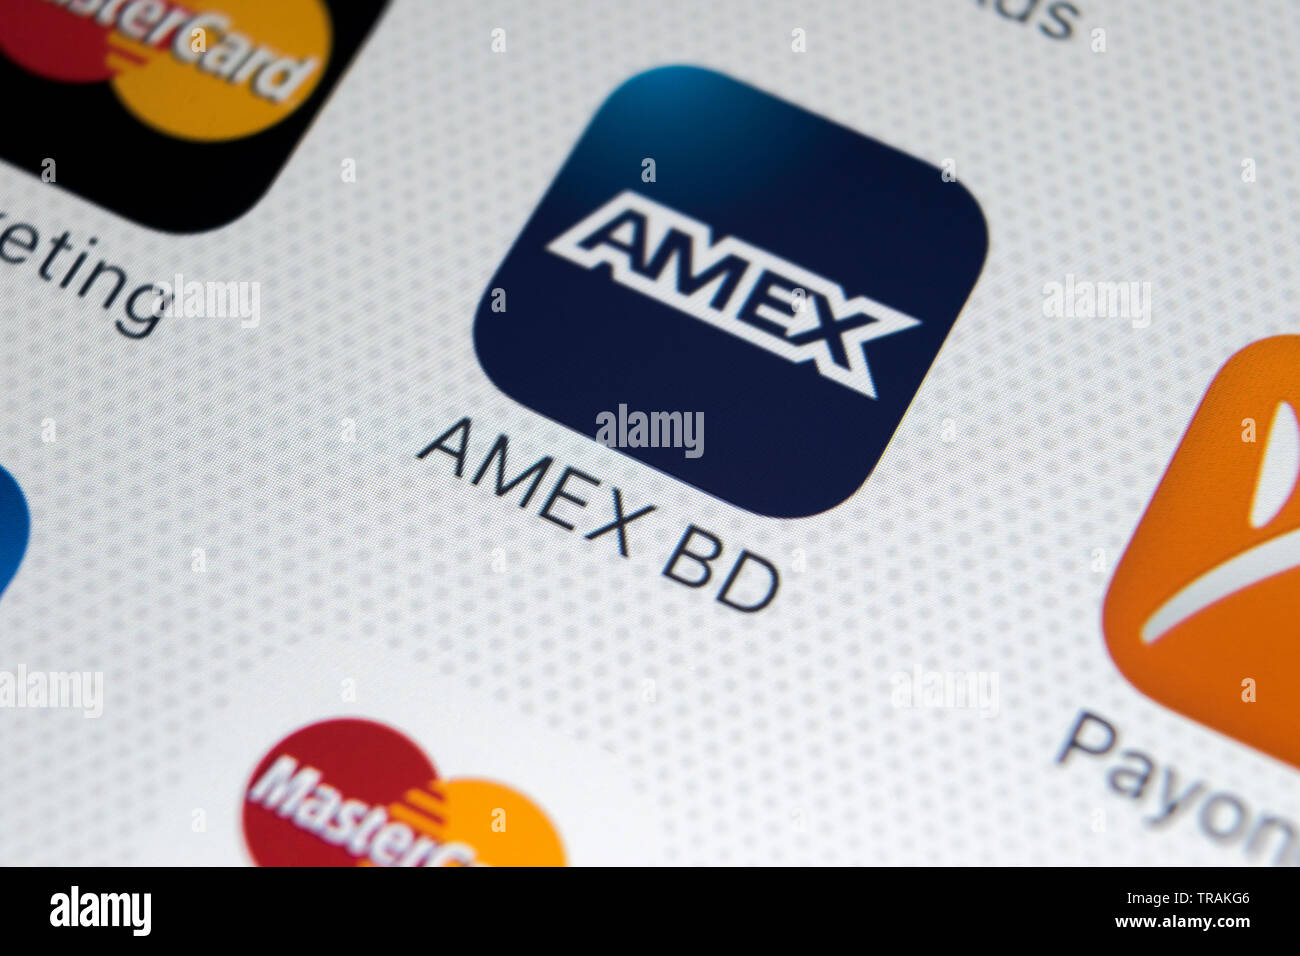 Amex Bd Stock Photos & Amex Bd Stock Images - Alamy